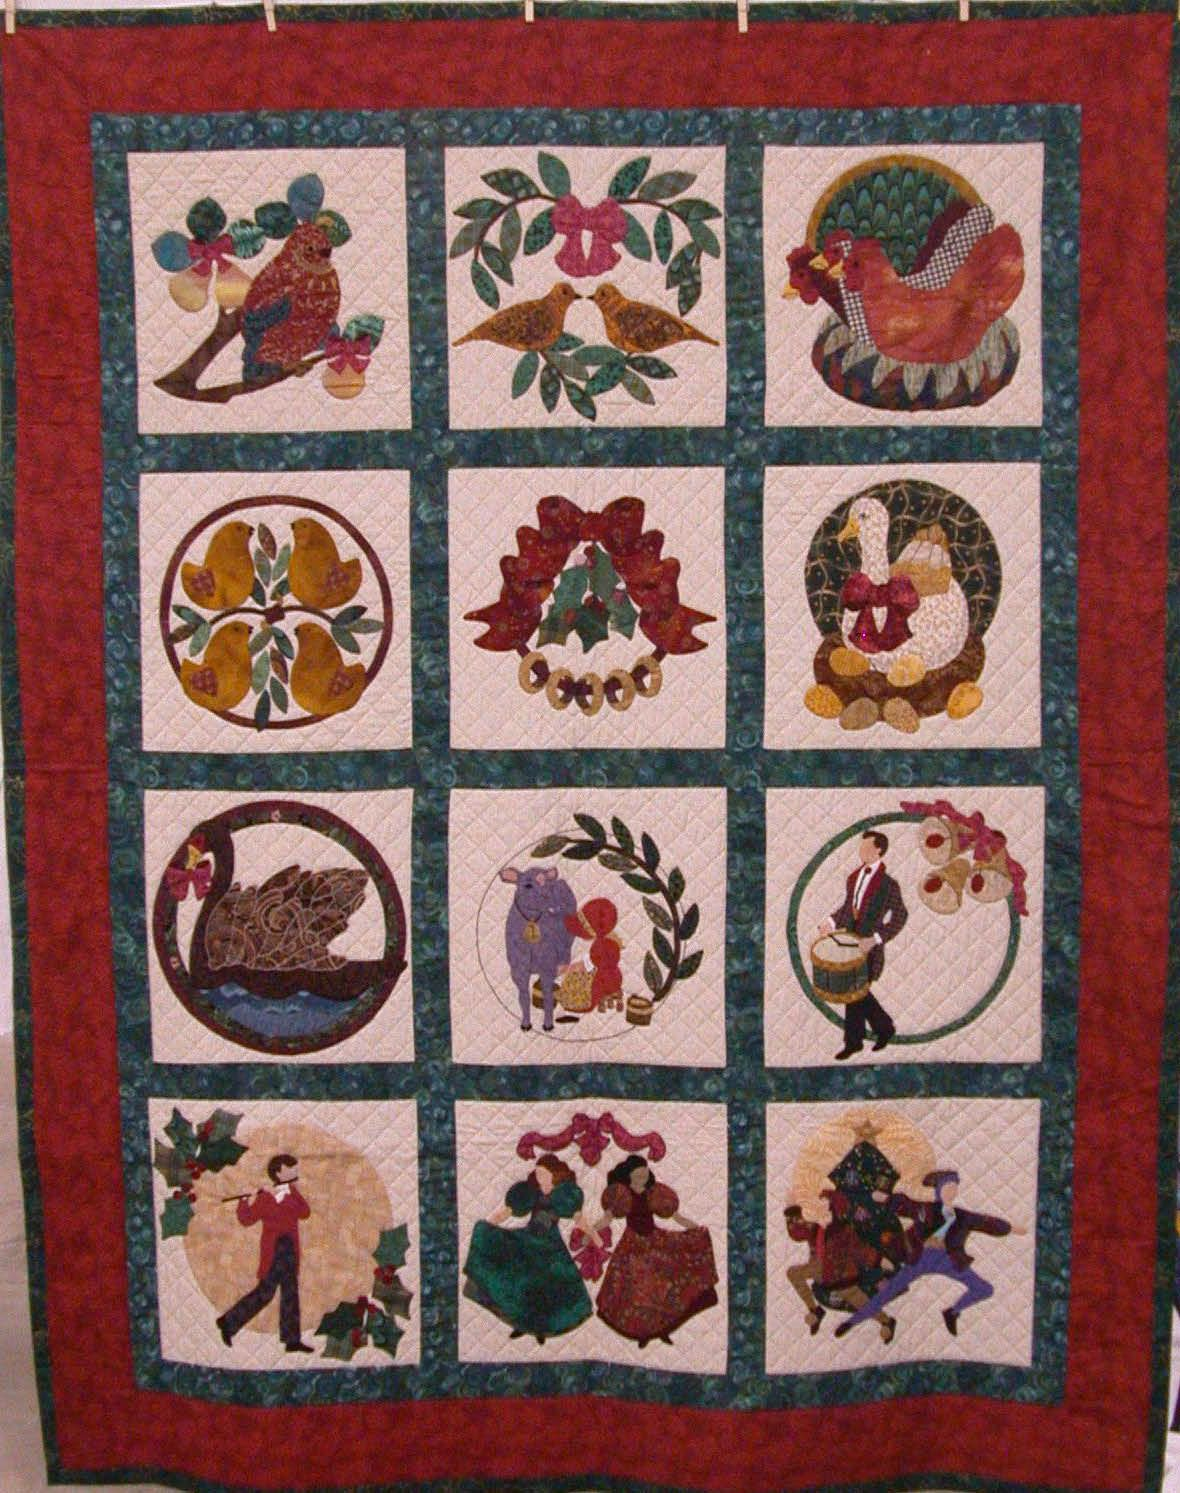 12 Days Of Christmas Quilt Blocks Nice Idea For Applique Christmas Applique Patterns Christmas Quilts Christmas Quilt Blocks